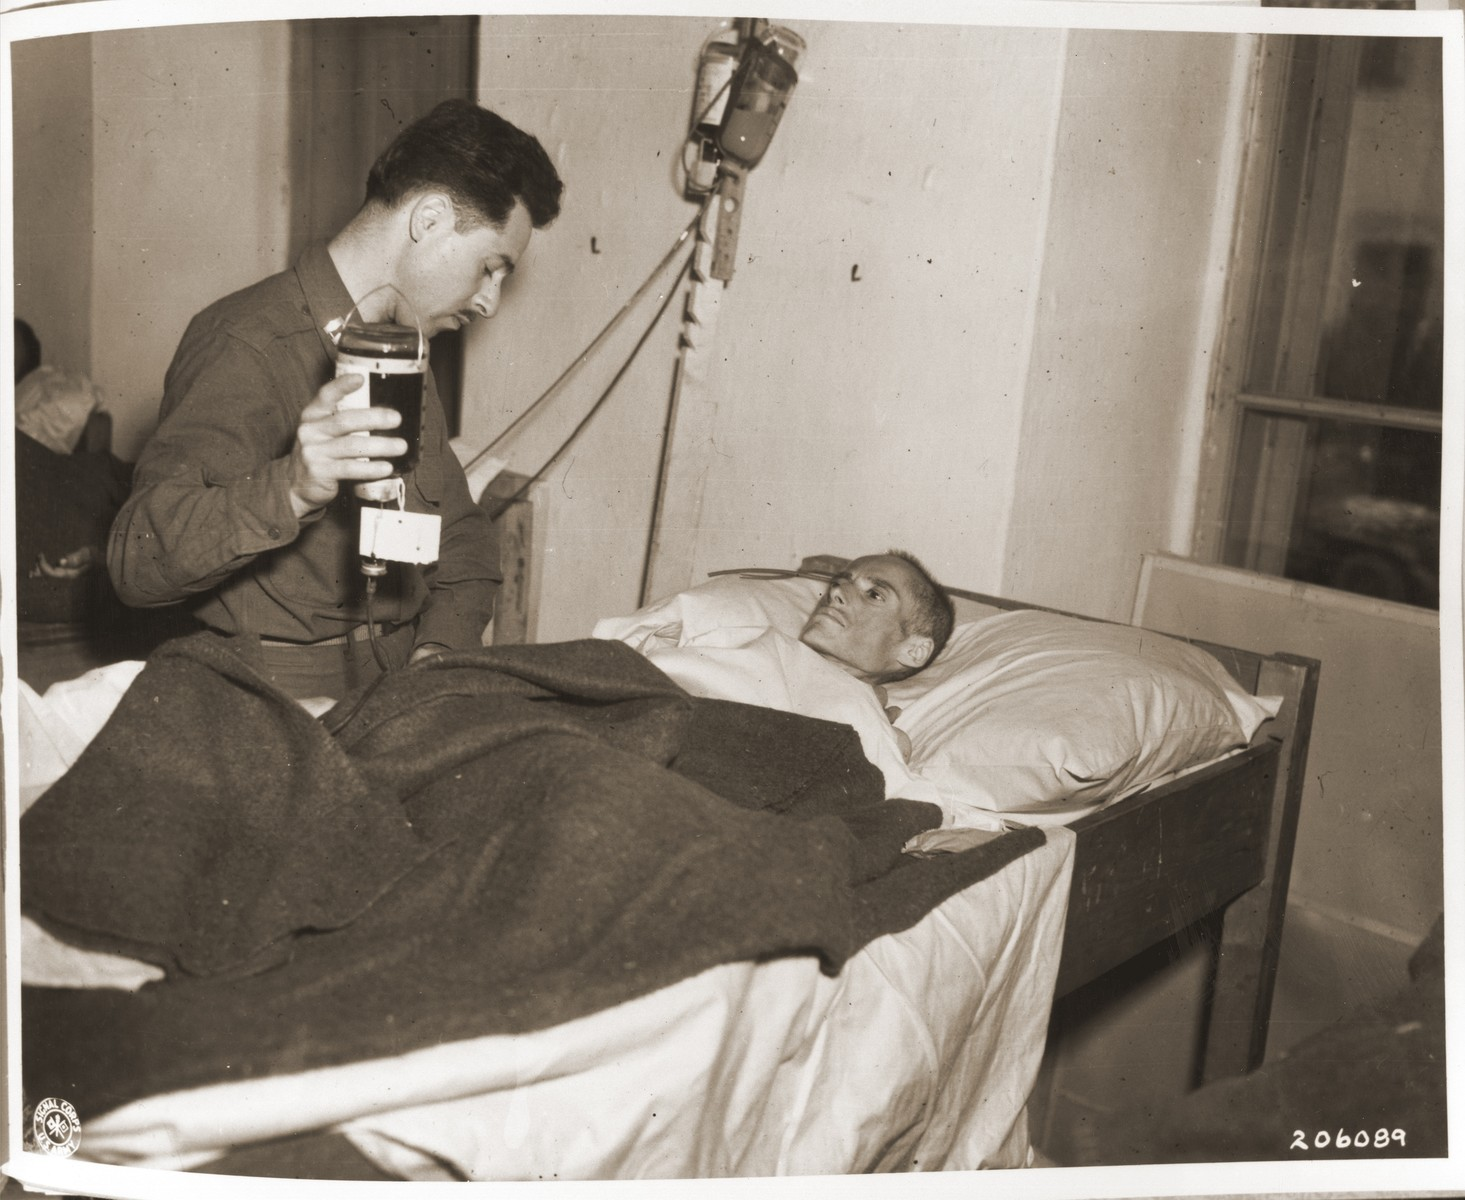 Captain Richard Berman of Philadelphia administers plasma to Roszi Frank, an emaciated survivor of a death march, in an American field hospital in Volary.